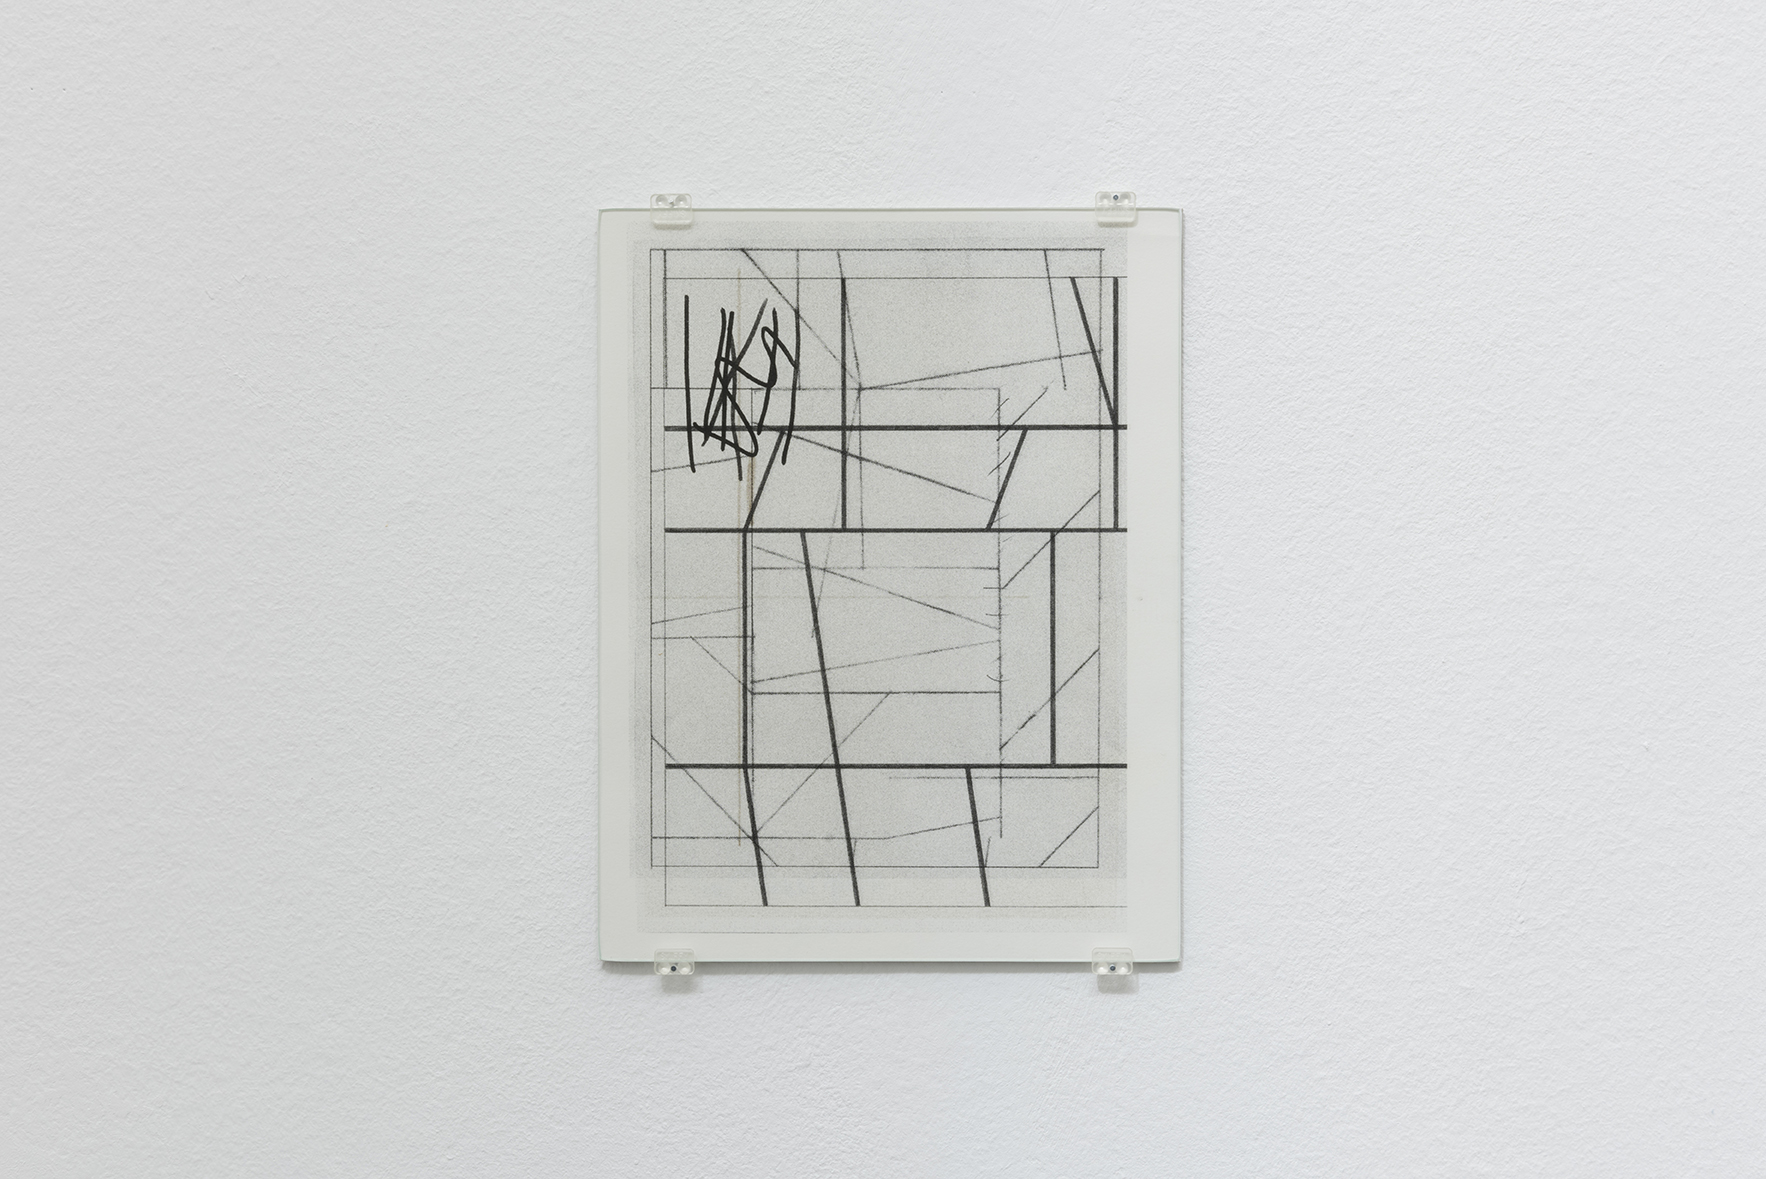 Zeichnungen 6, 2015 | A Drawing Placed Between Two Objects (with Mark Manders) | ProjecteSD